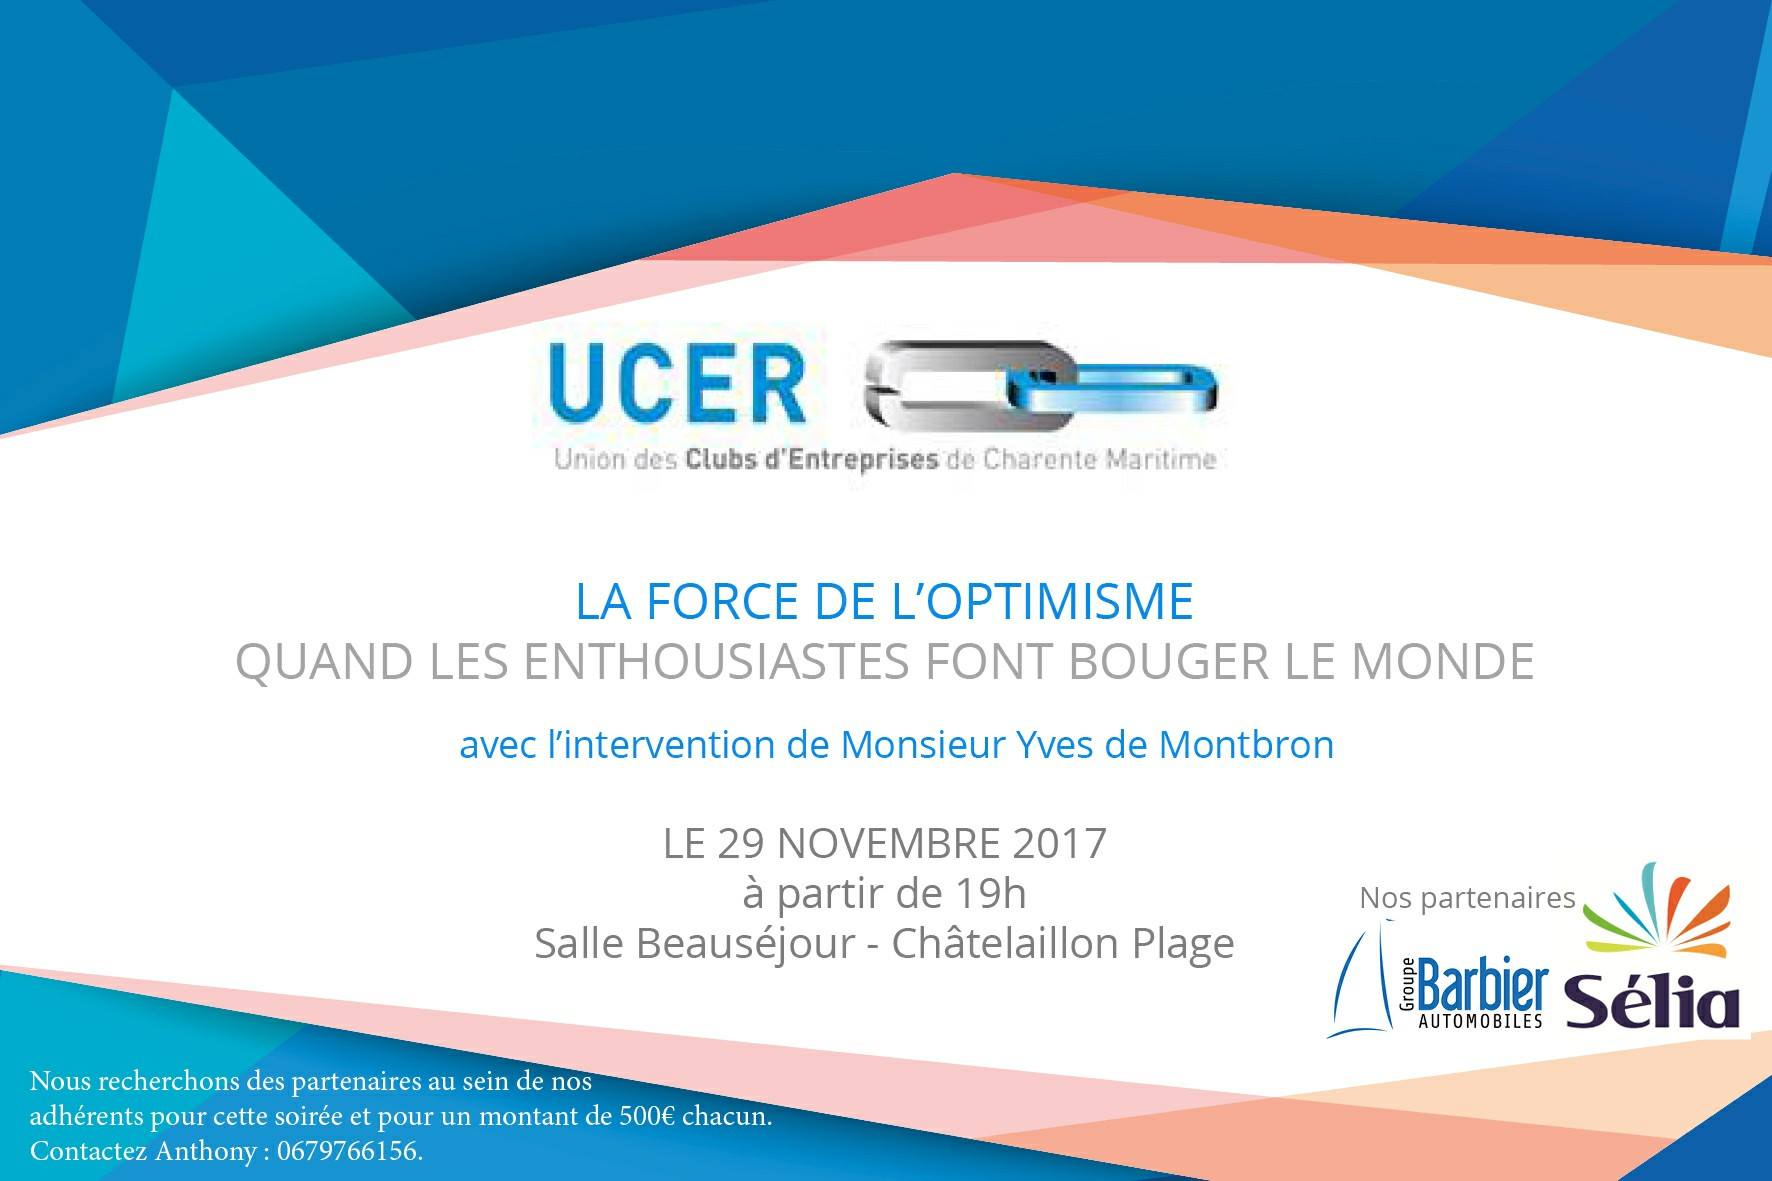 ucer - exco- - valliance - optimisme